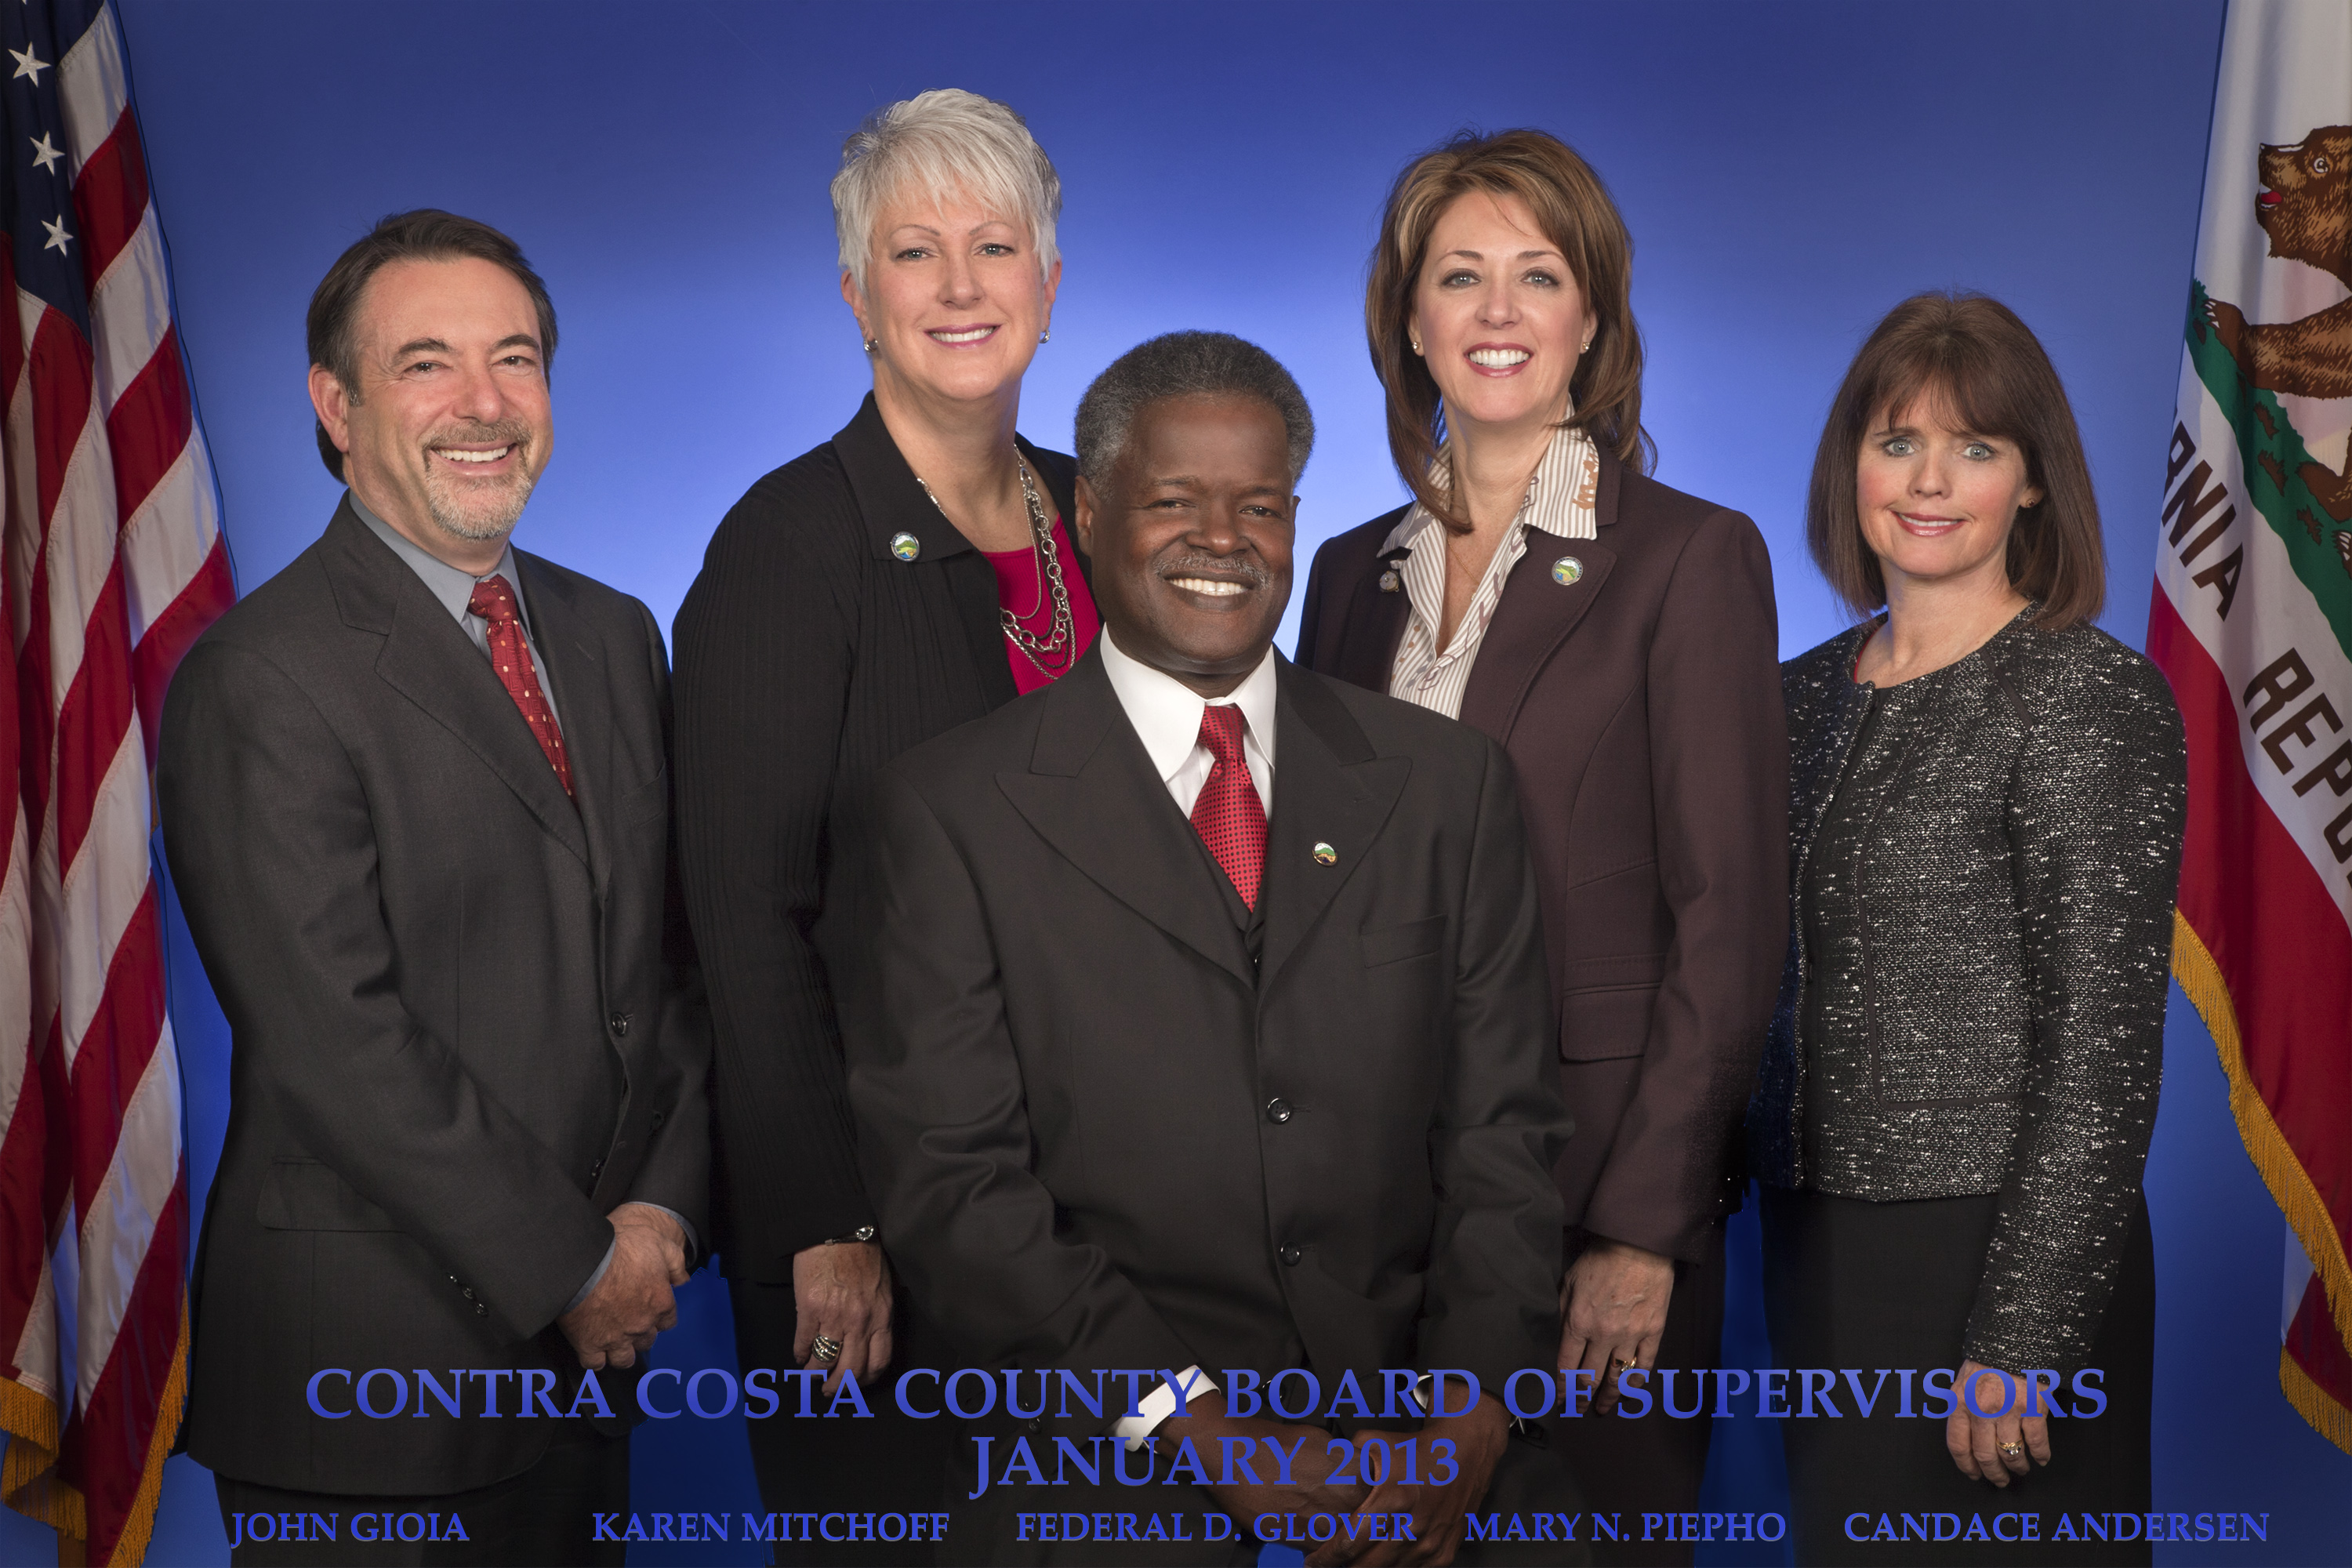 2013 Board of Supervisors